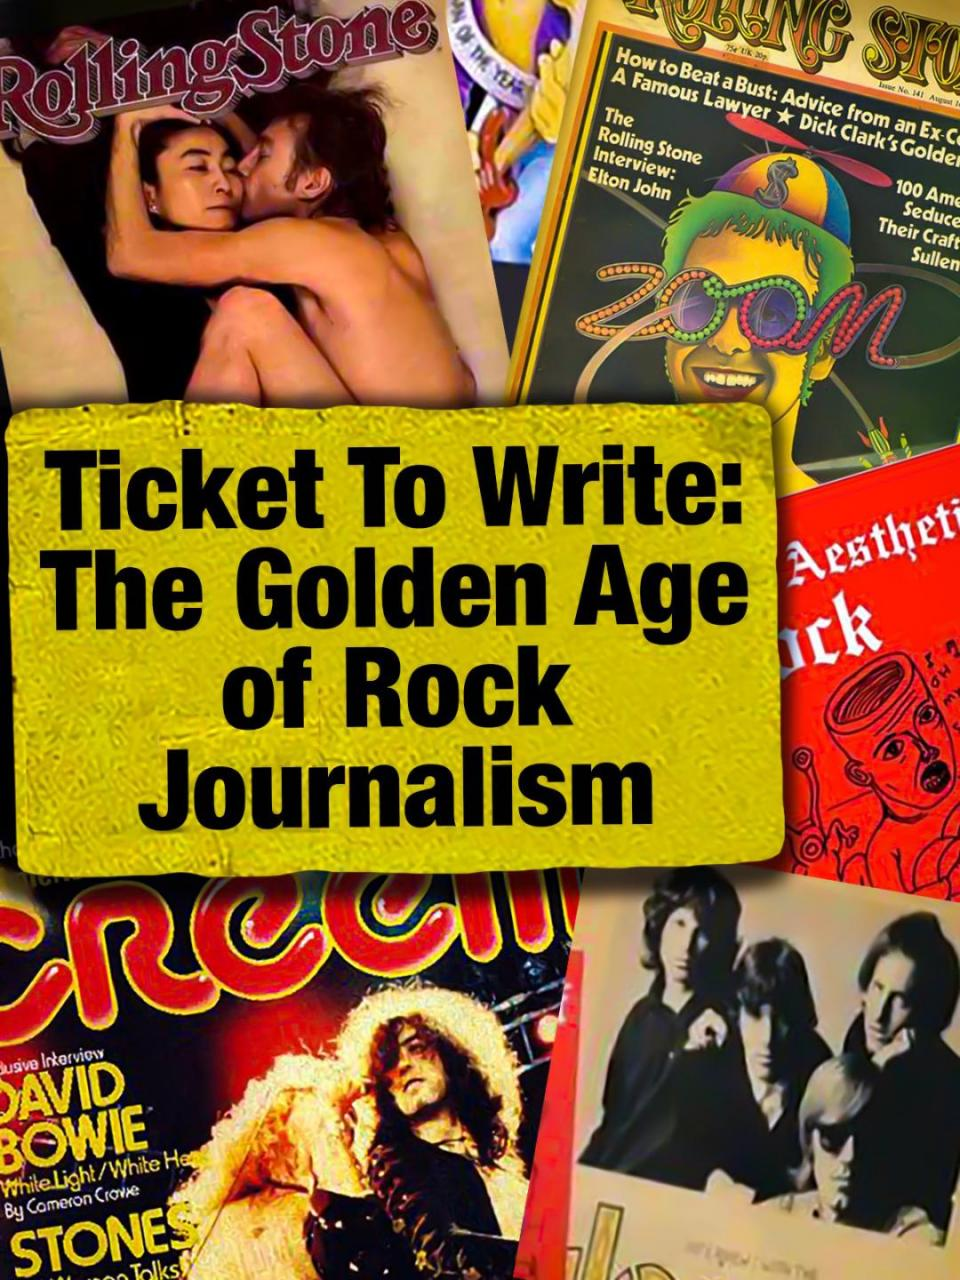 Ticket to Write: The Golden Age of Rock Journalism